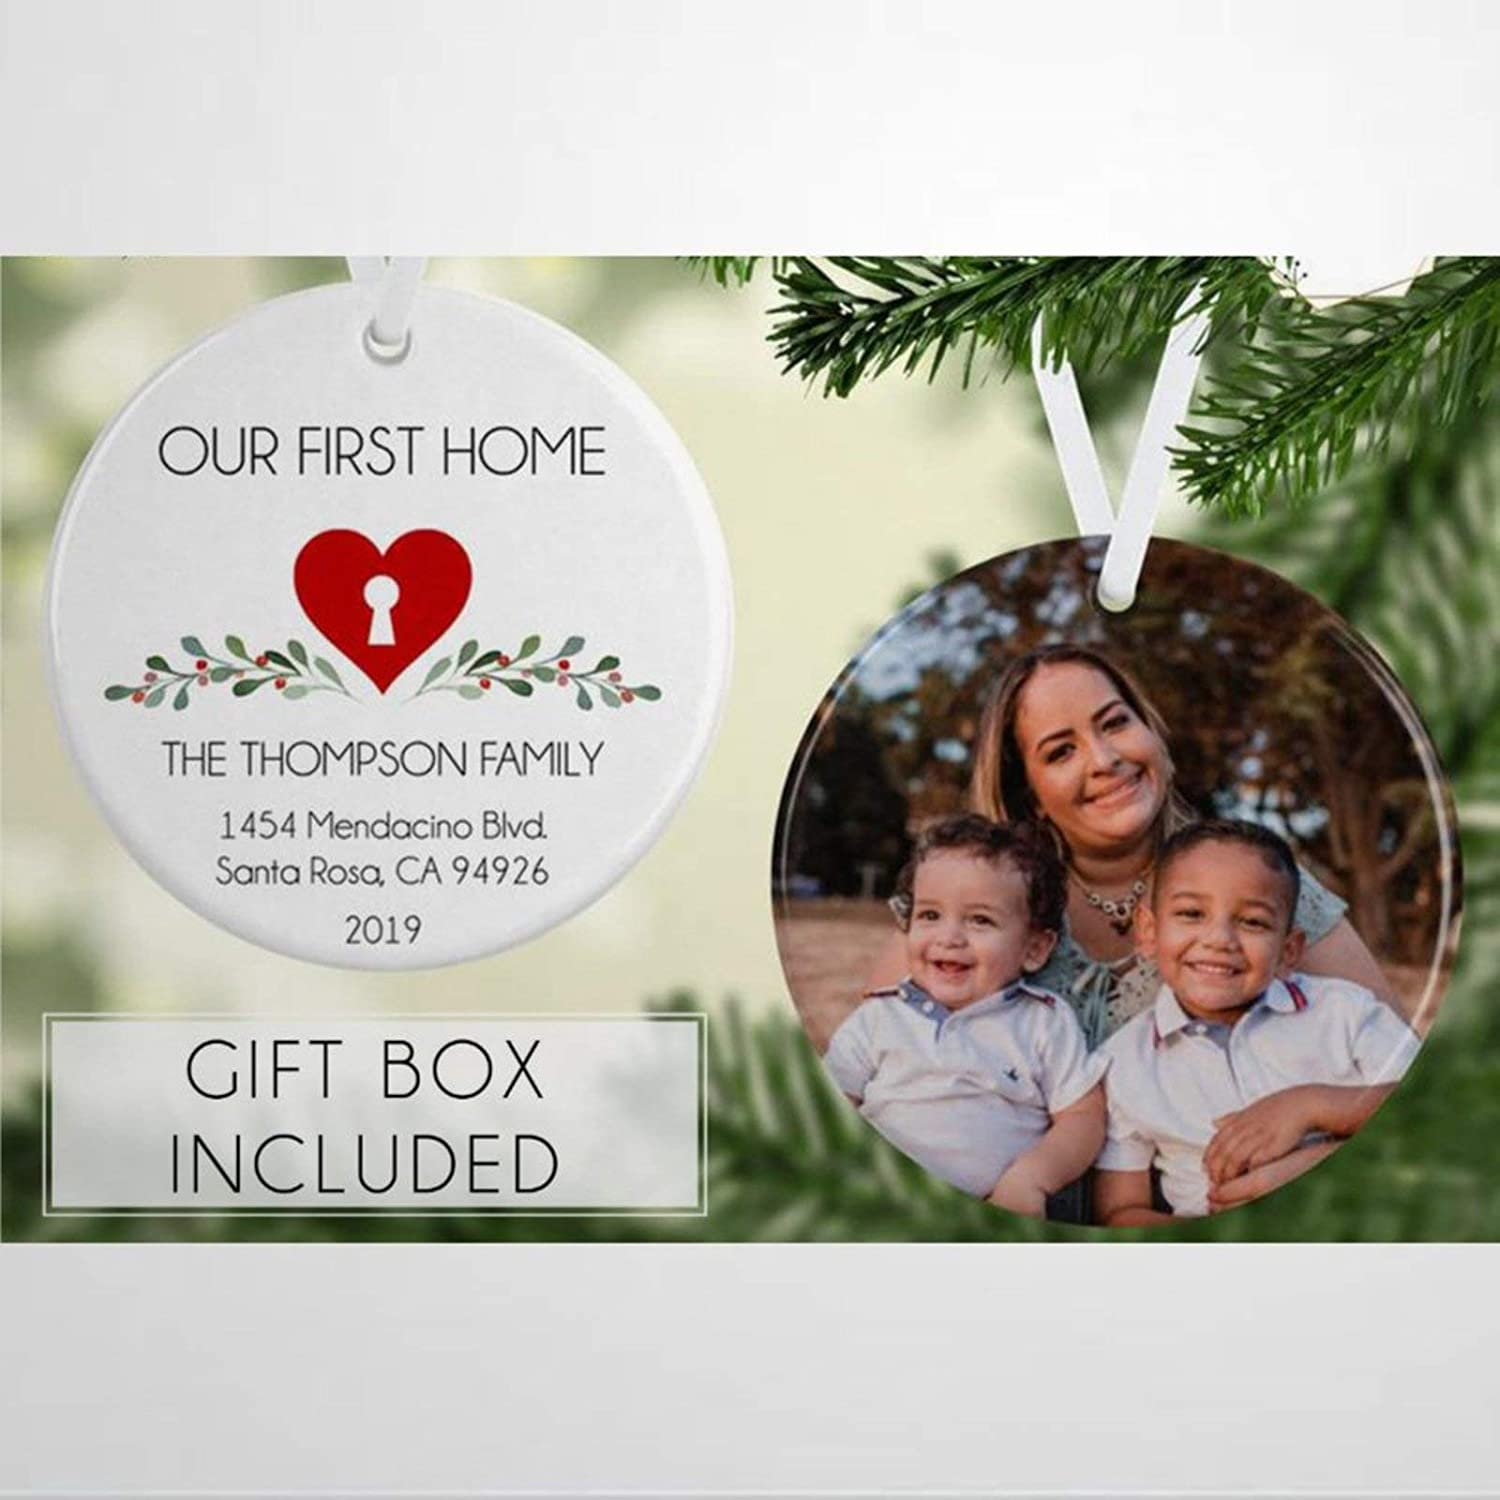 DONL9BAUER Home is Where The Heart Our First Custom Christmas Ornament,in New Housewarming Realtor Closing Ceramic Tree Hanging Keepsake Ornament Present for Family,Friends,Couple &Engagement Party.